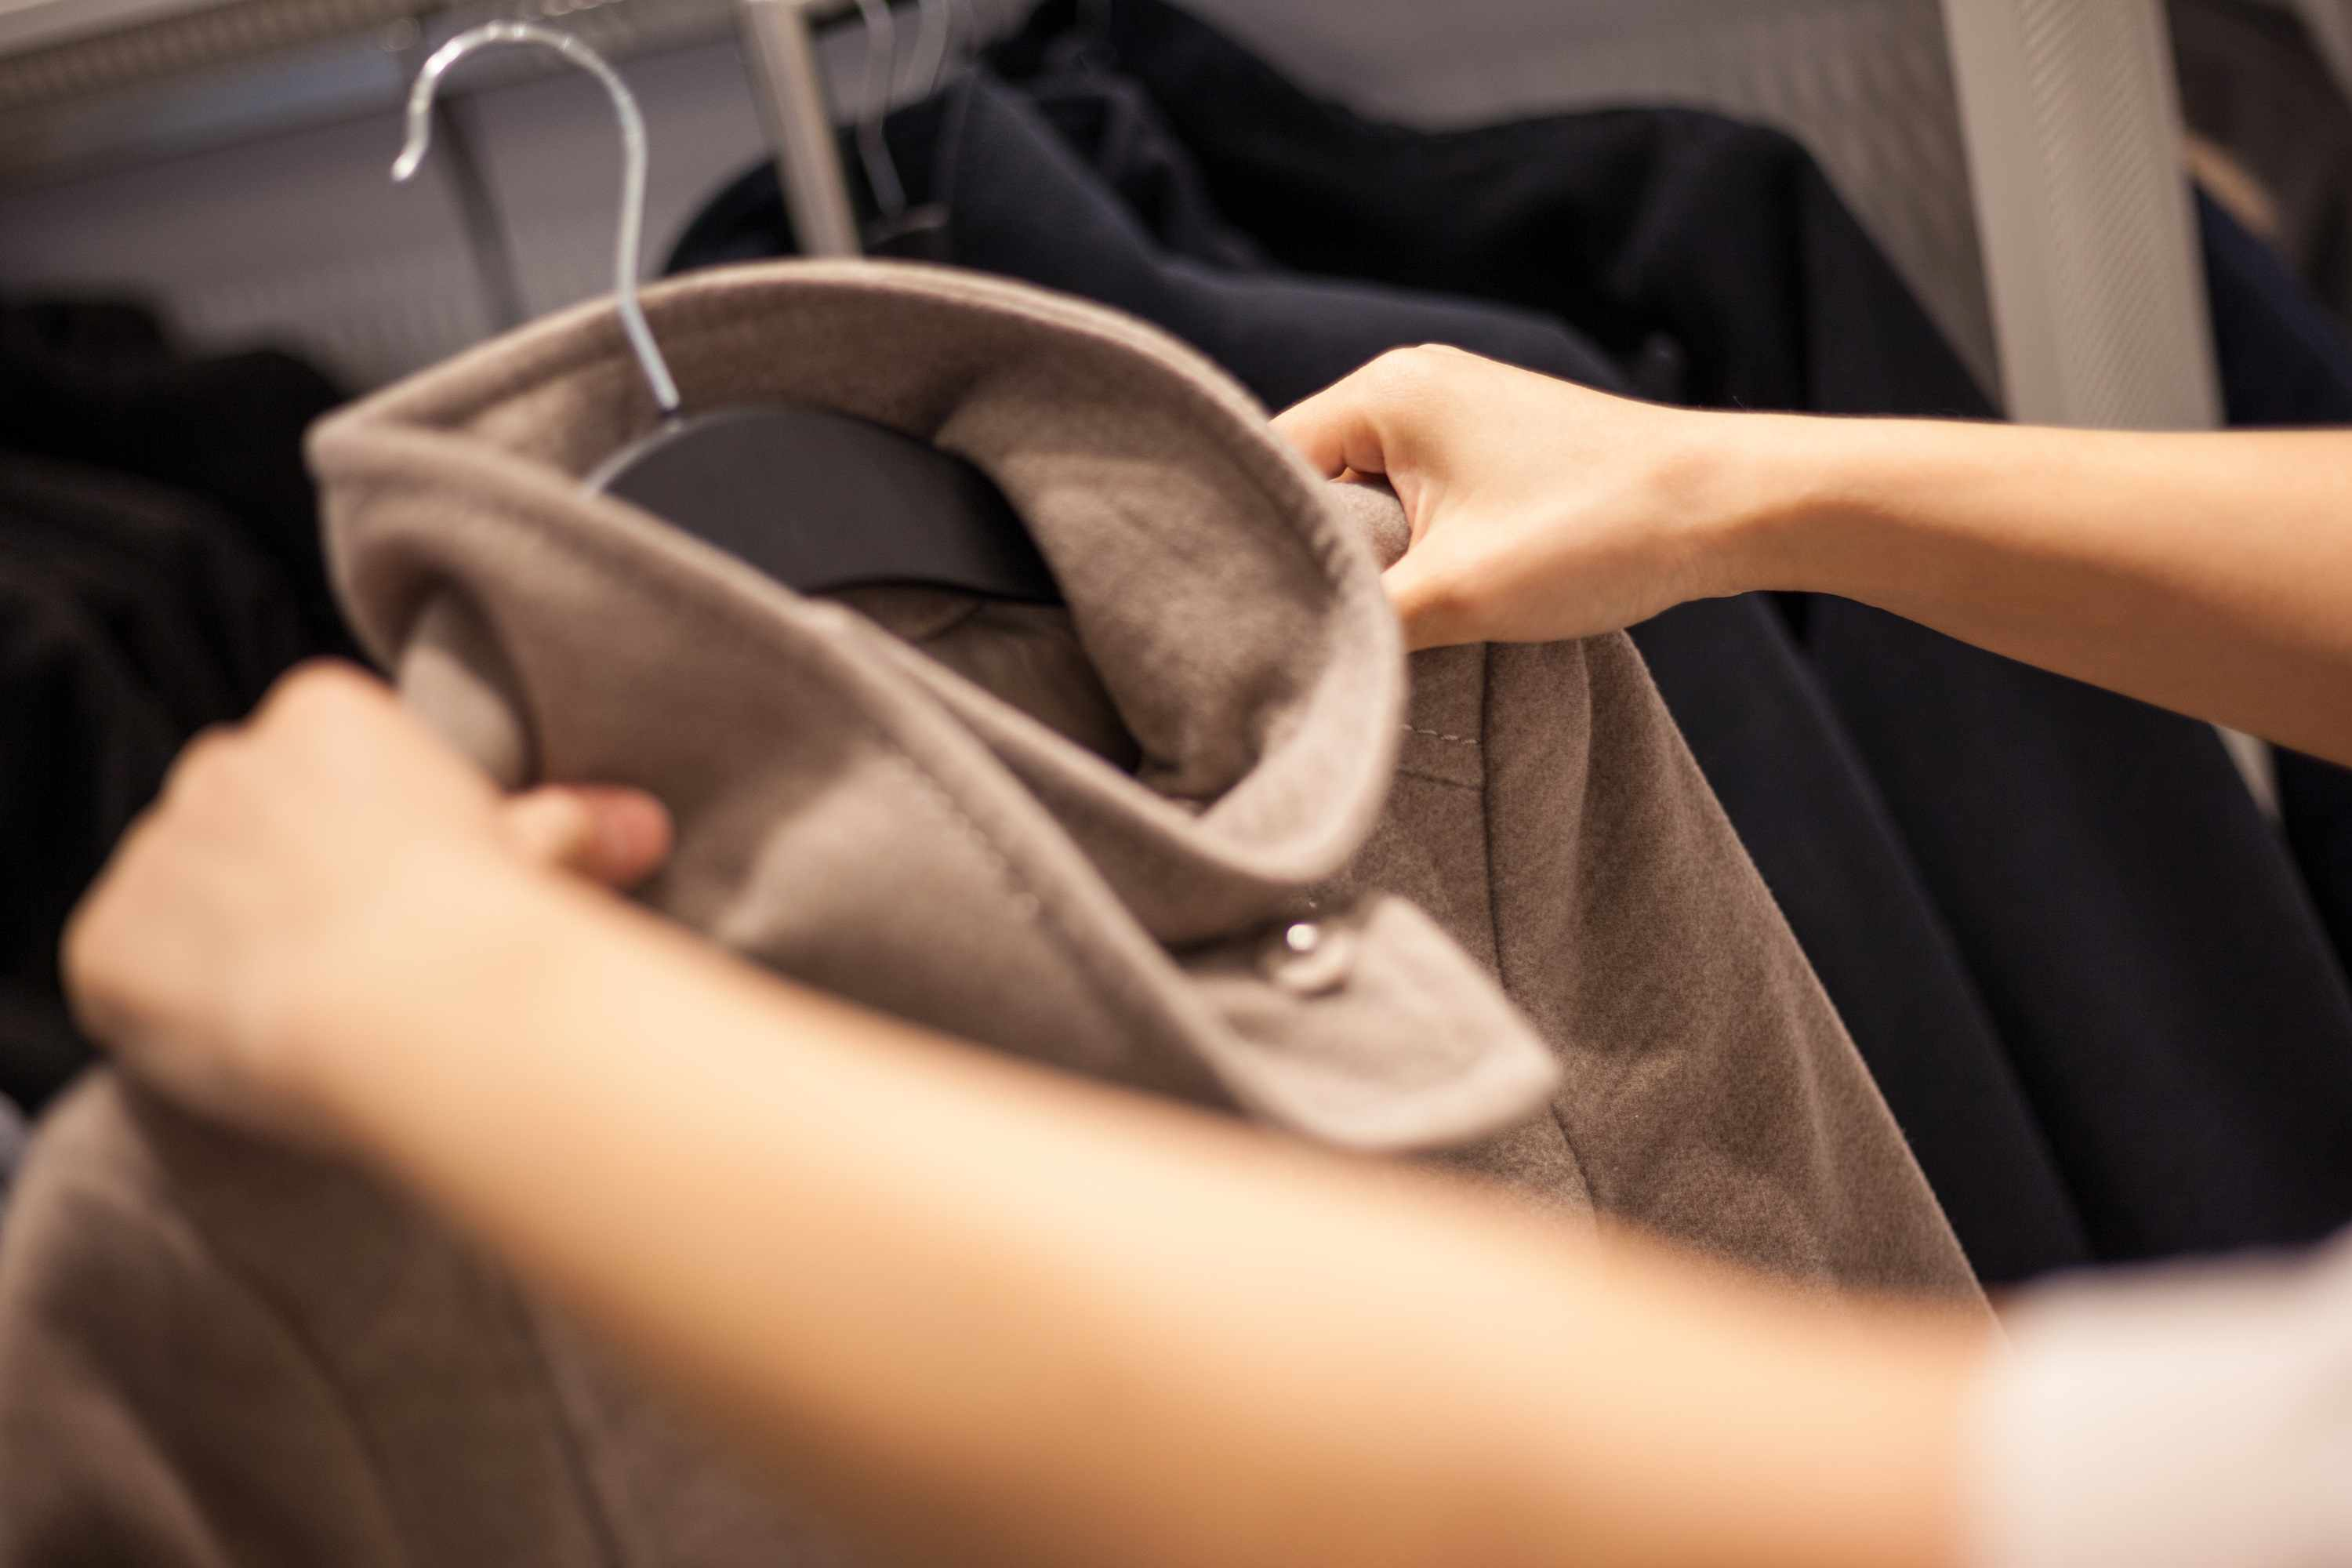 Store Winter Clothes During Spring Cleaning